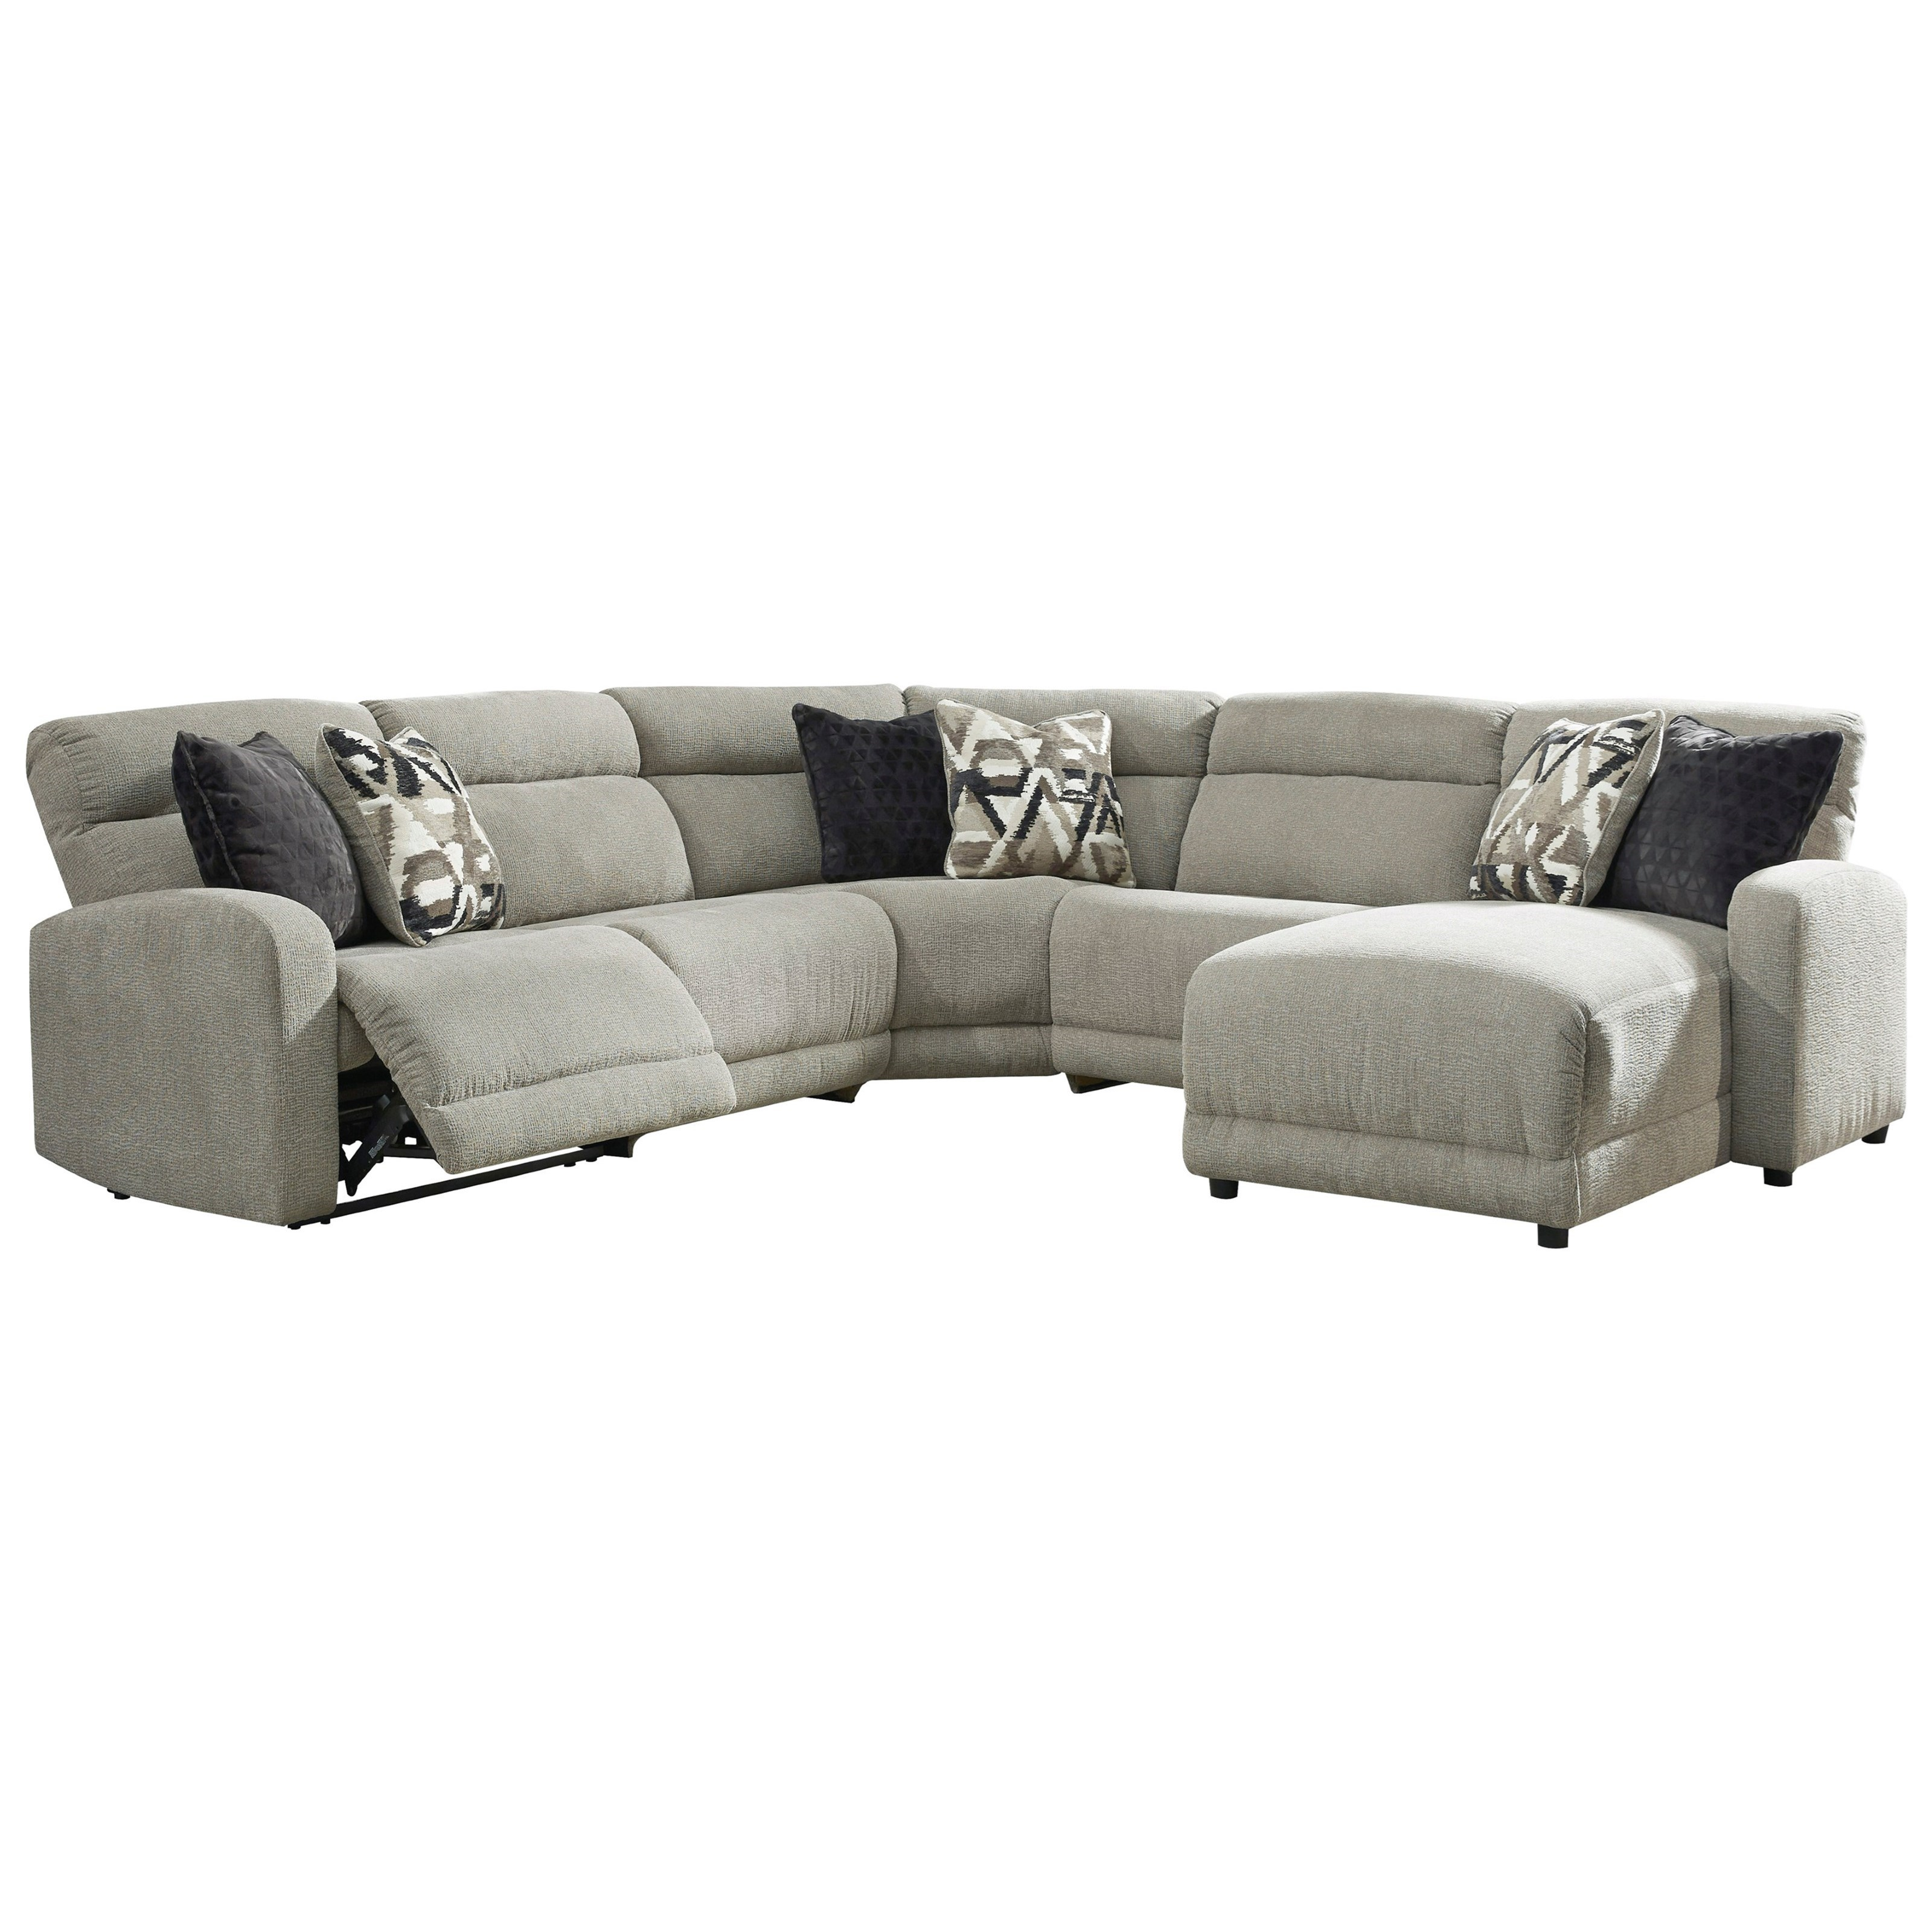 Colleyville Power Reclining Sectional by Signature Design by Ashley at Zak's Warehouse Clearance Center